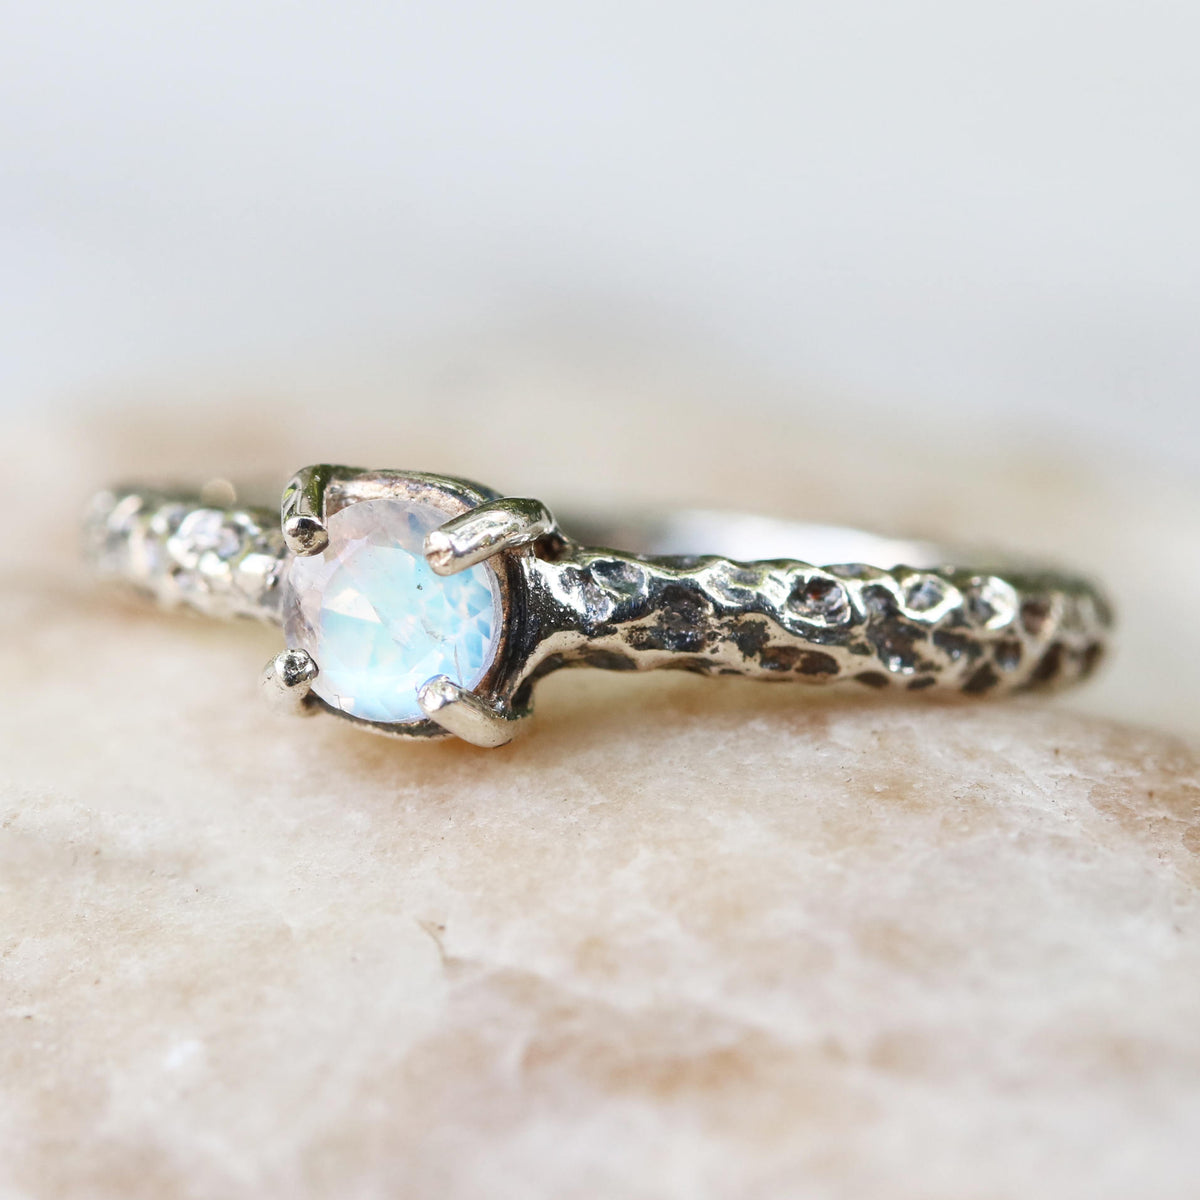 Sterling silver ring in hard textured oxidized design with round faceted moonstone in silver prongs setting